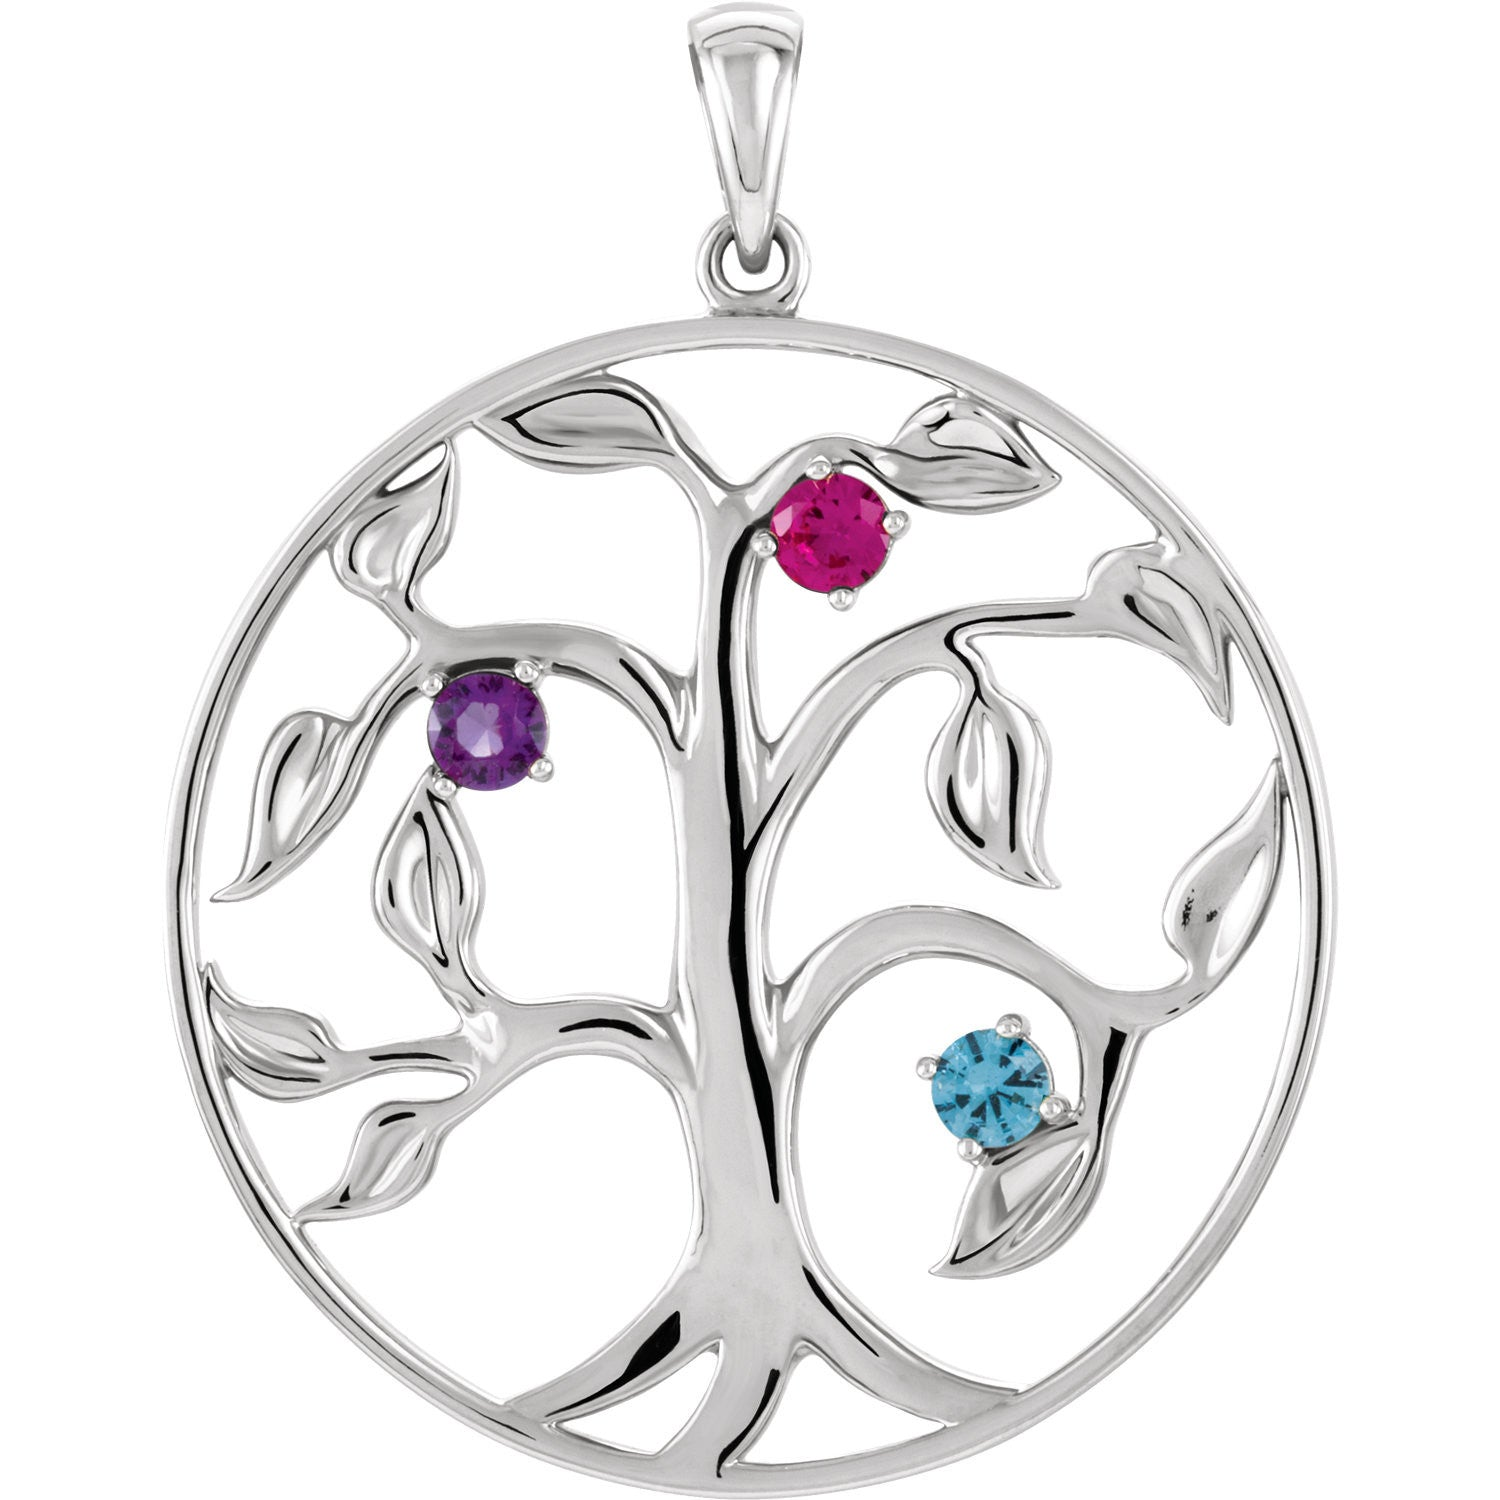 family necklace forever sterling ayl pendant bling jewelry tree silver disc inches